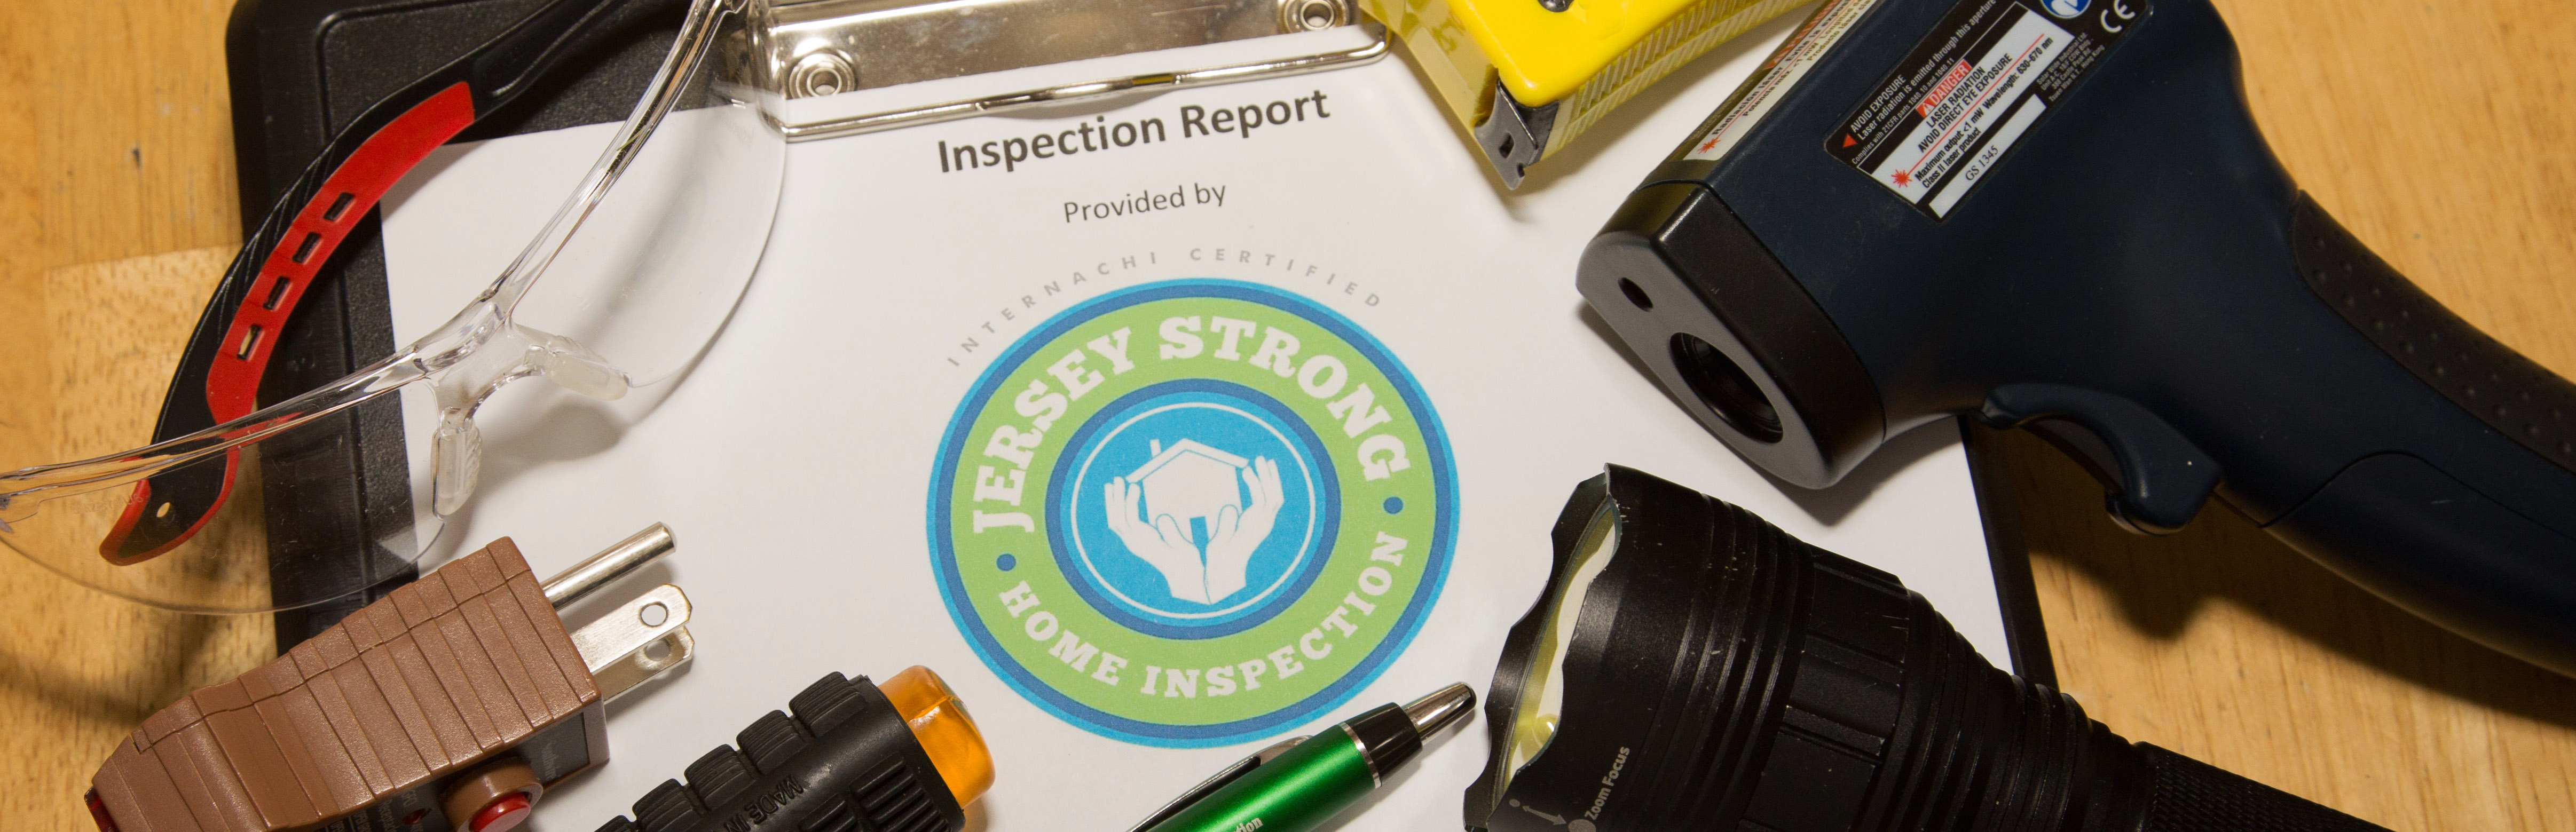 I-Morganville-NJ-Home-Inspector